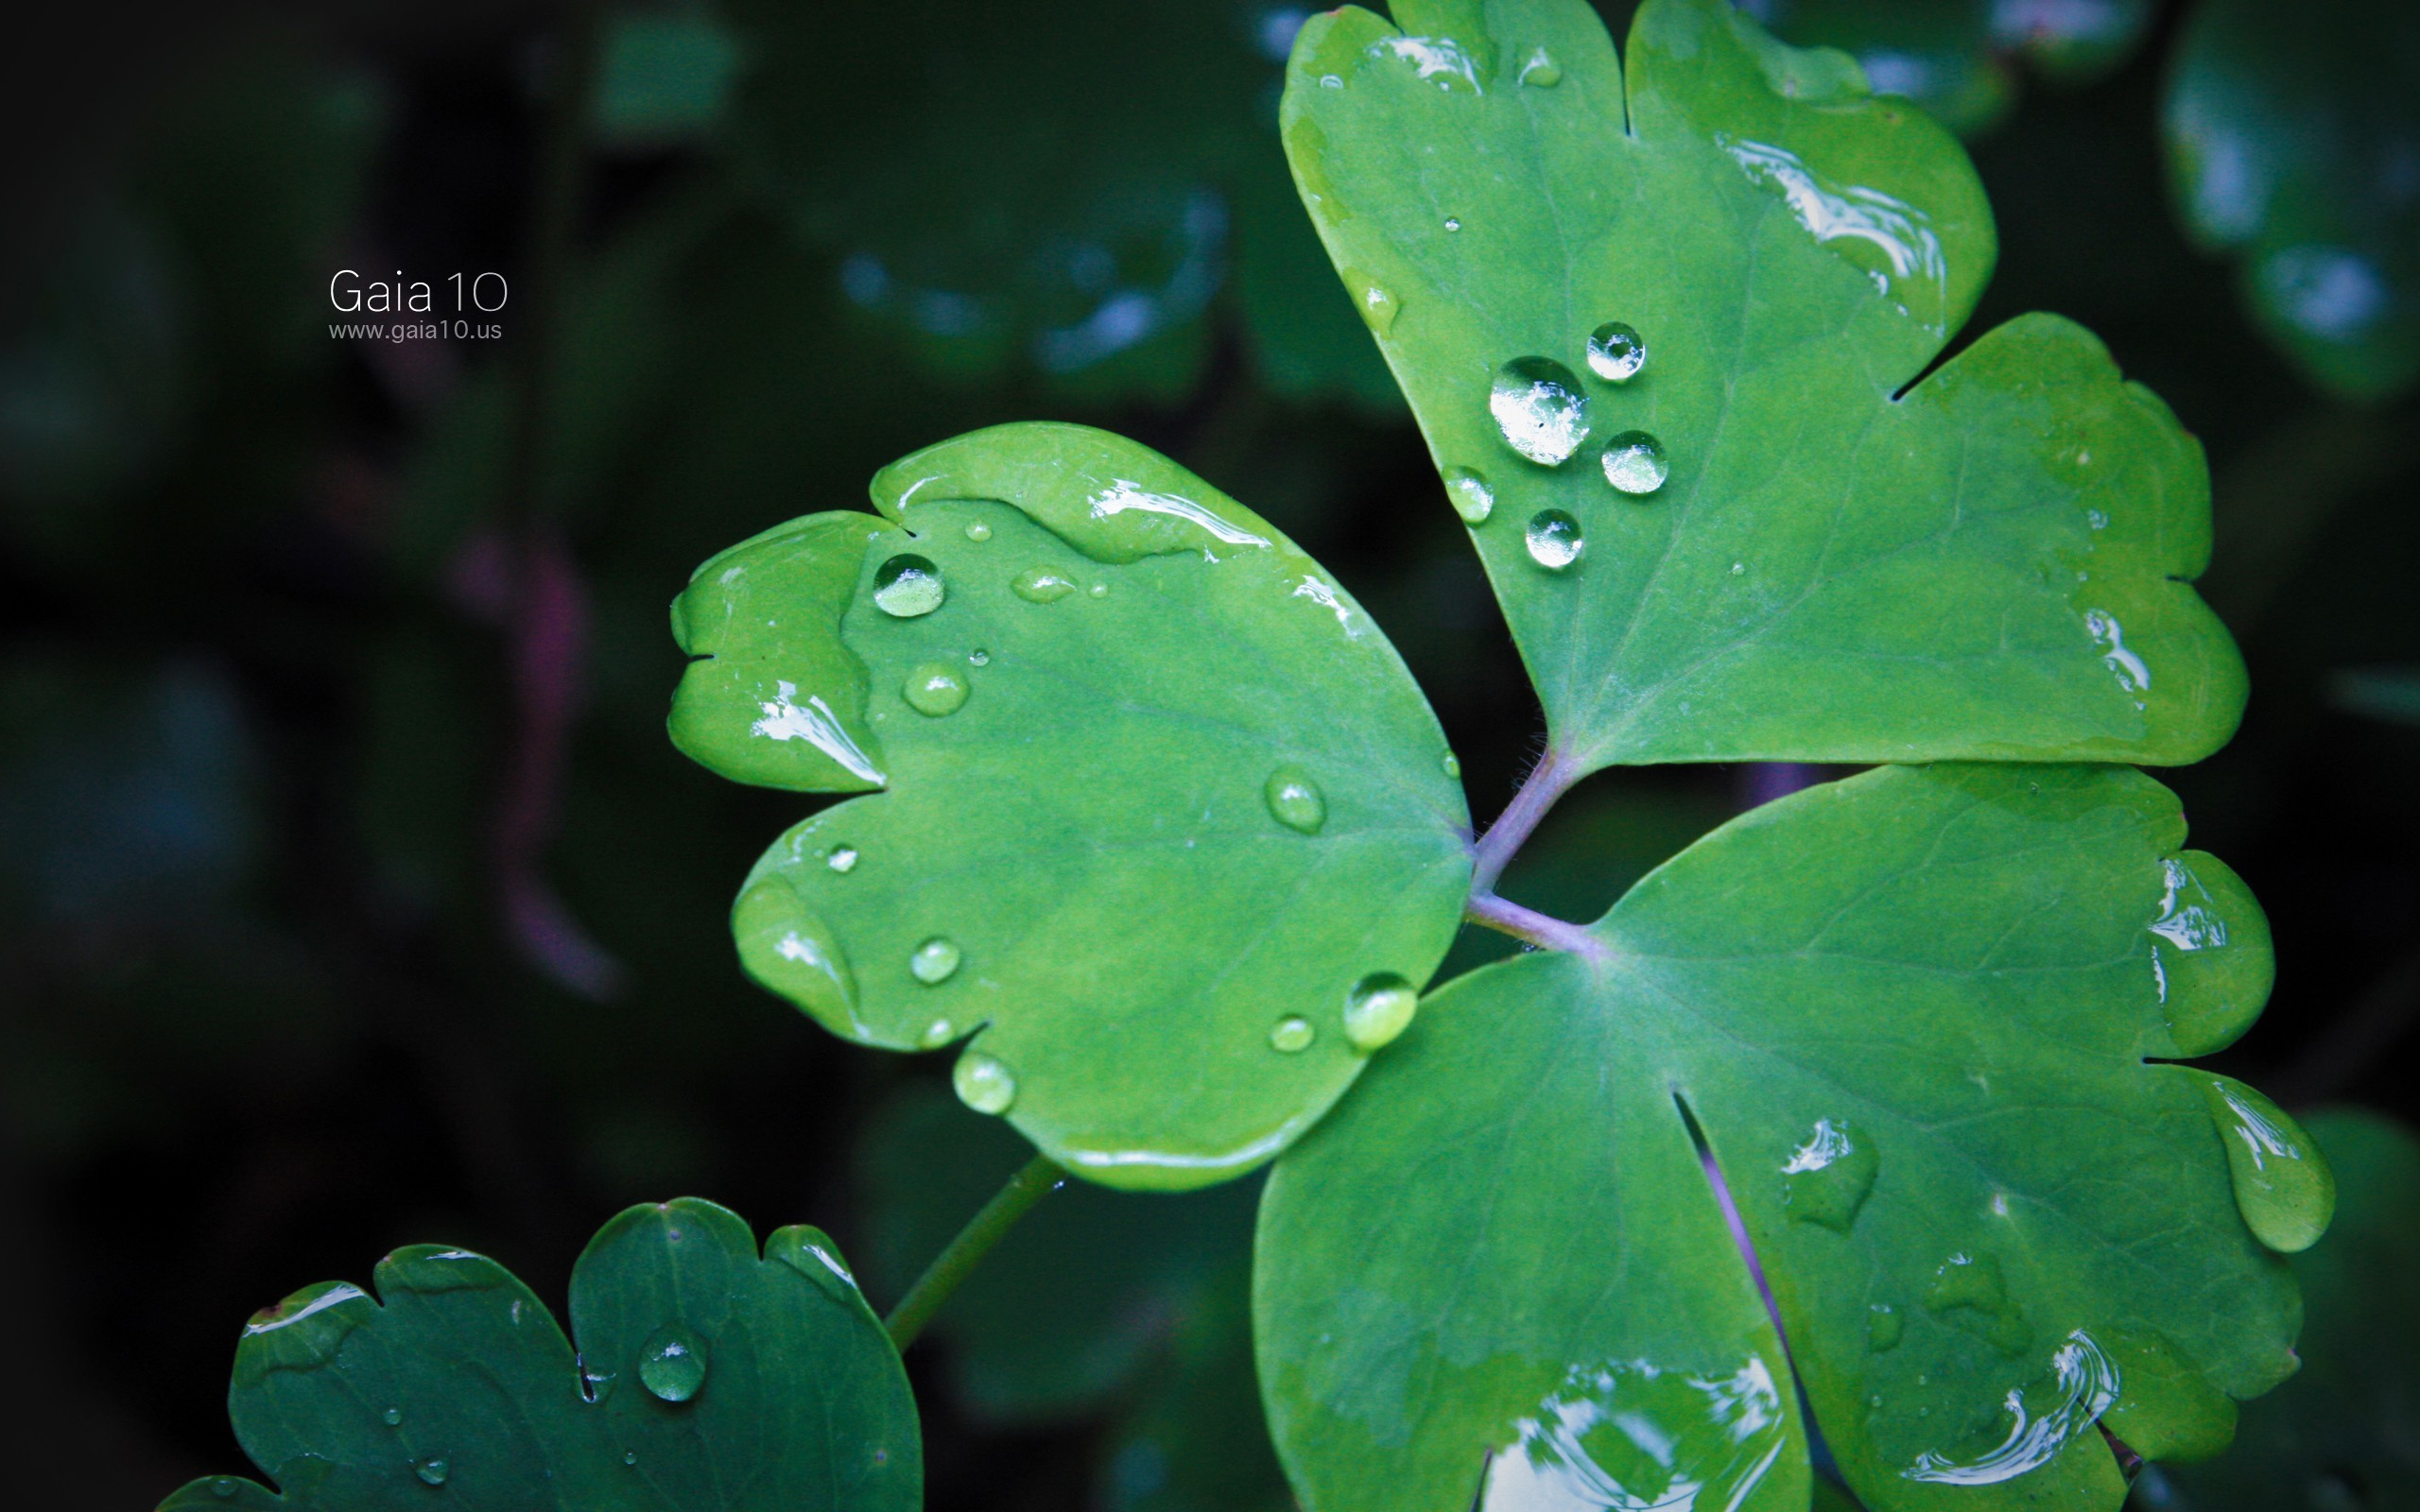 Plants shamrock clover HD Wallpaper